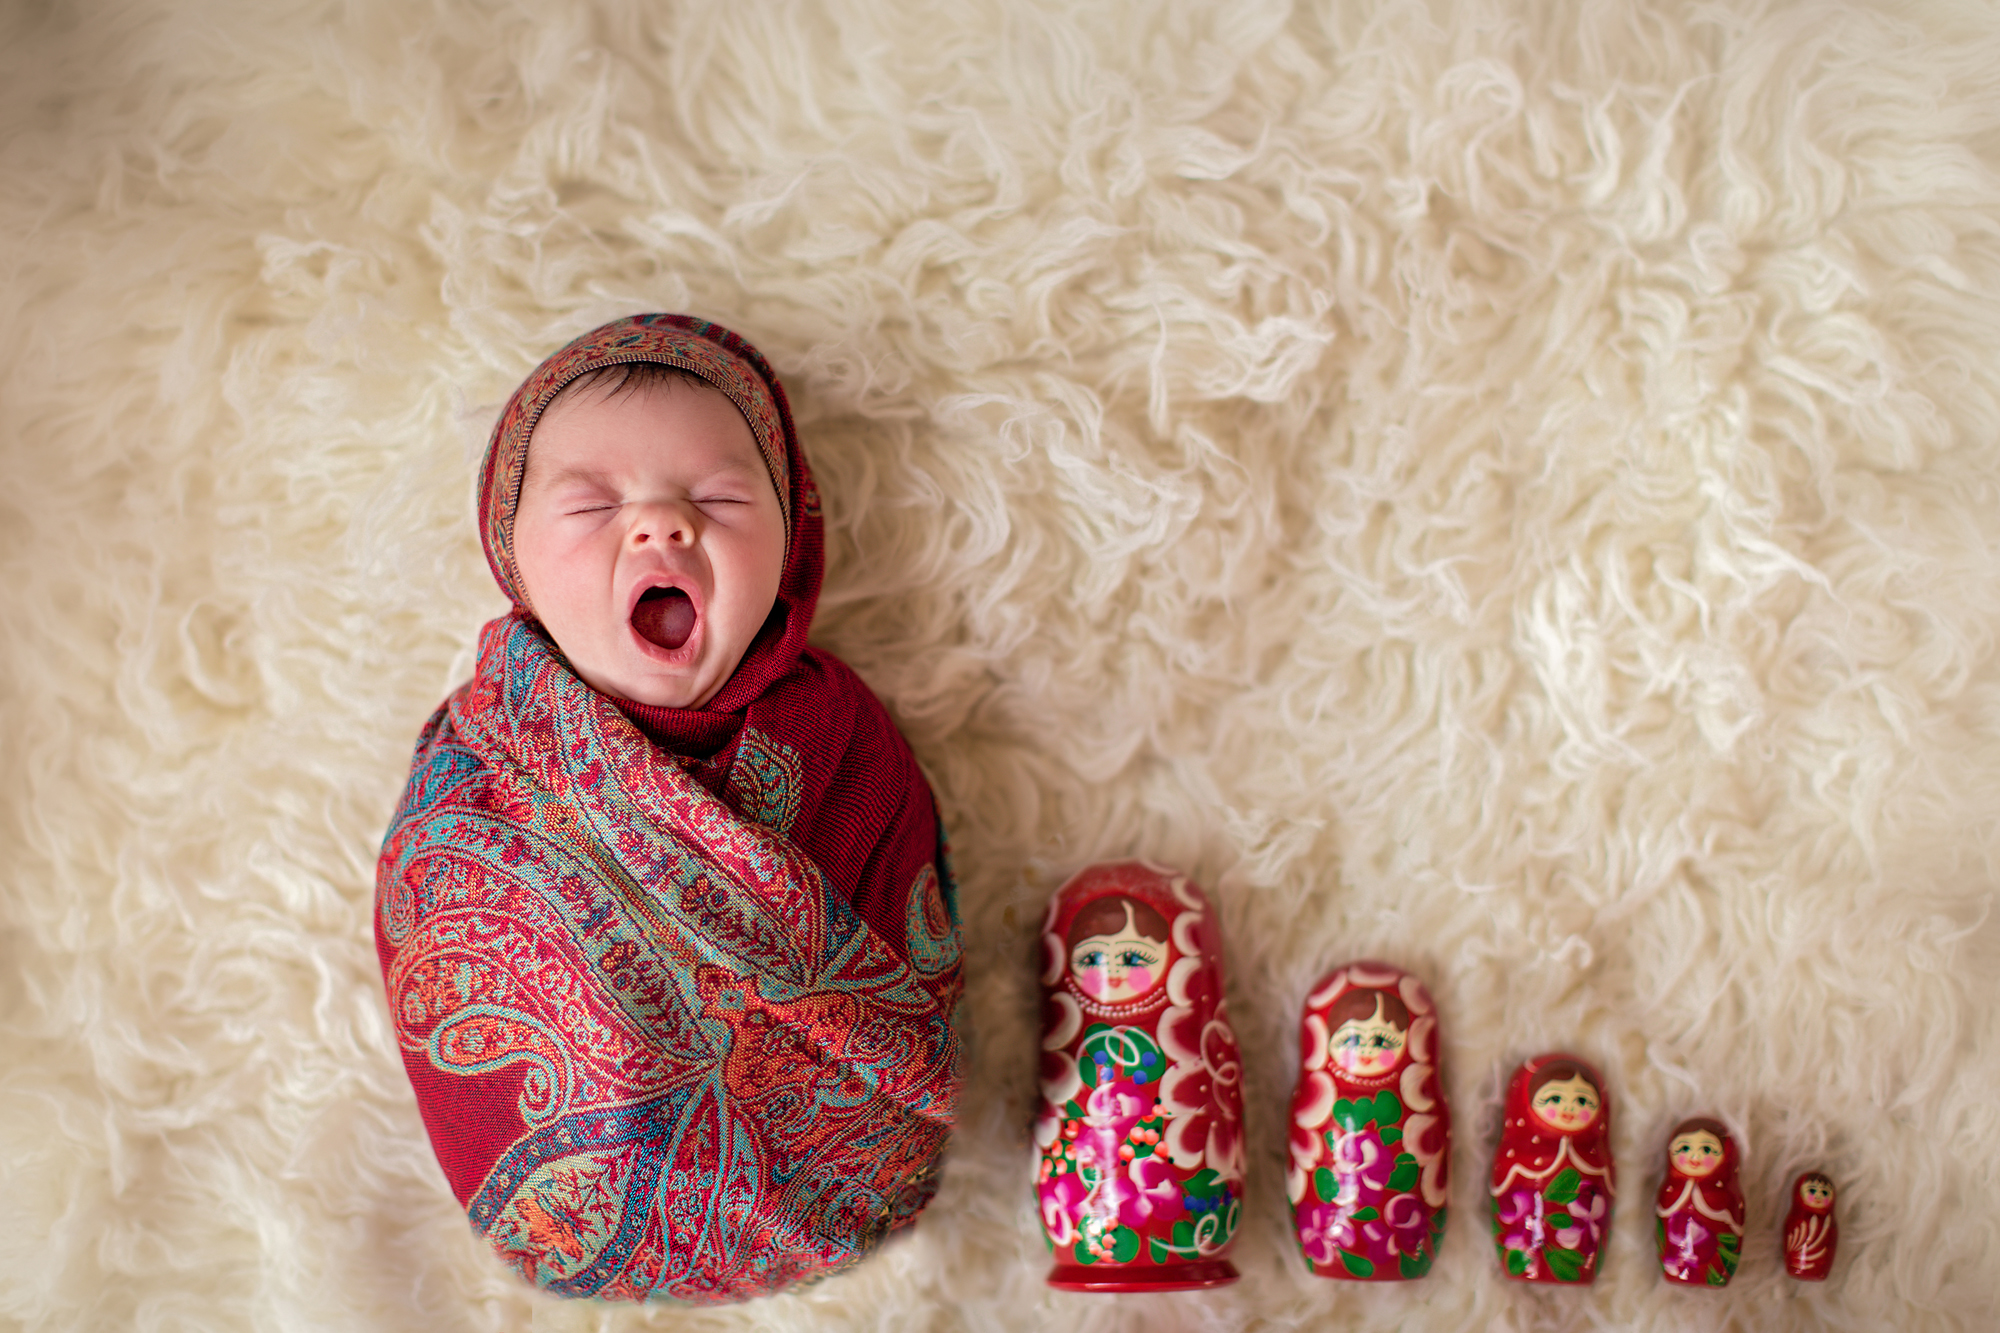 Newborn baby girl photoshoot idea. Calgary and Airdrie Newborn Photographer - Milashka Photography. Matryoshka - Russian doll shot. Baby girl is wrapped like a Matryoshka (Russian doll) and have the rest of the matryoshka's beside her.